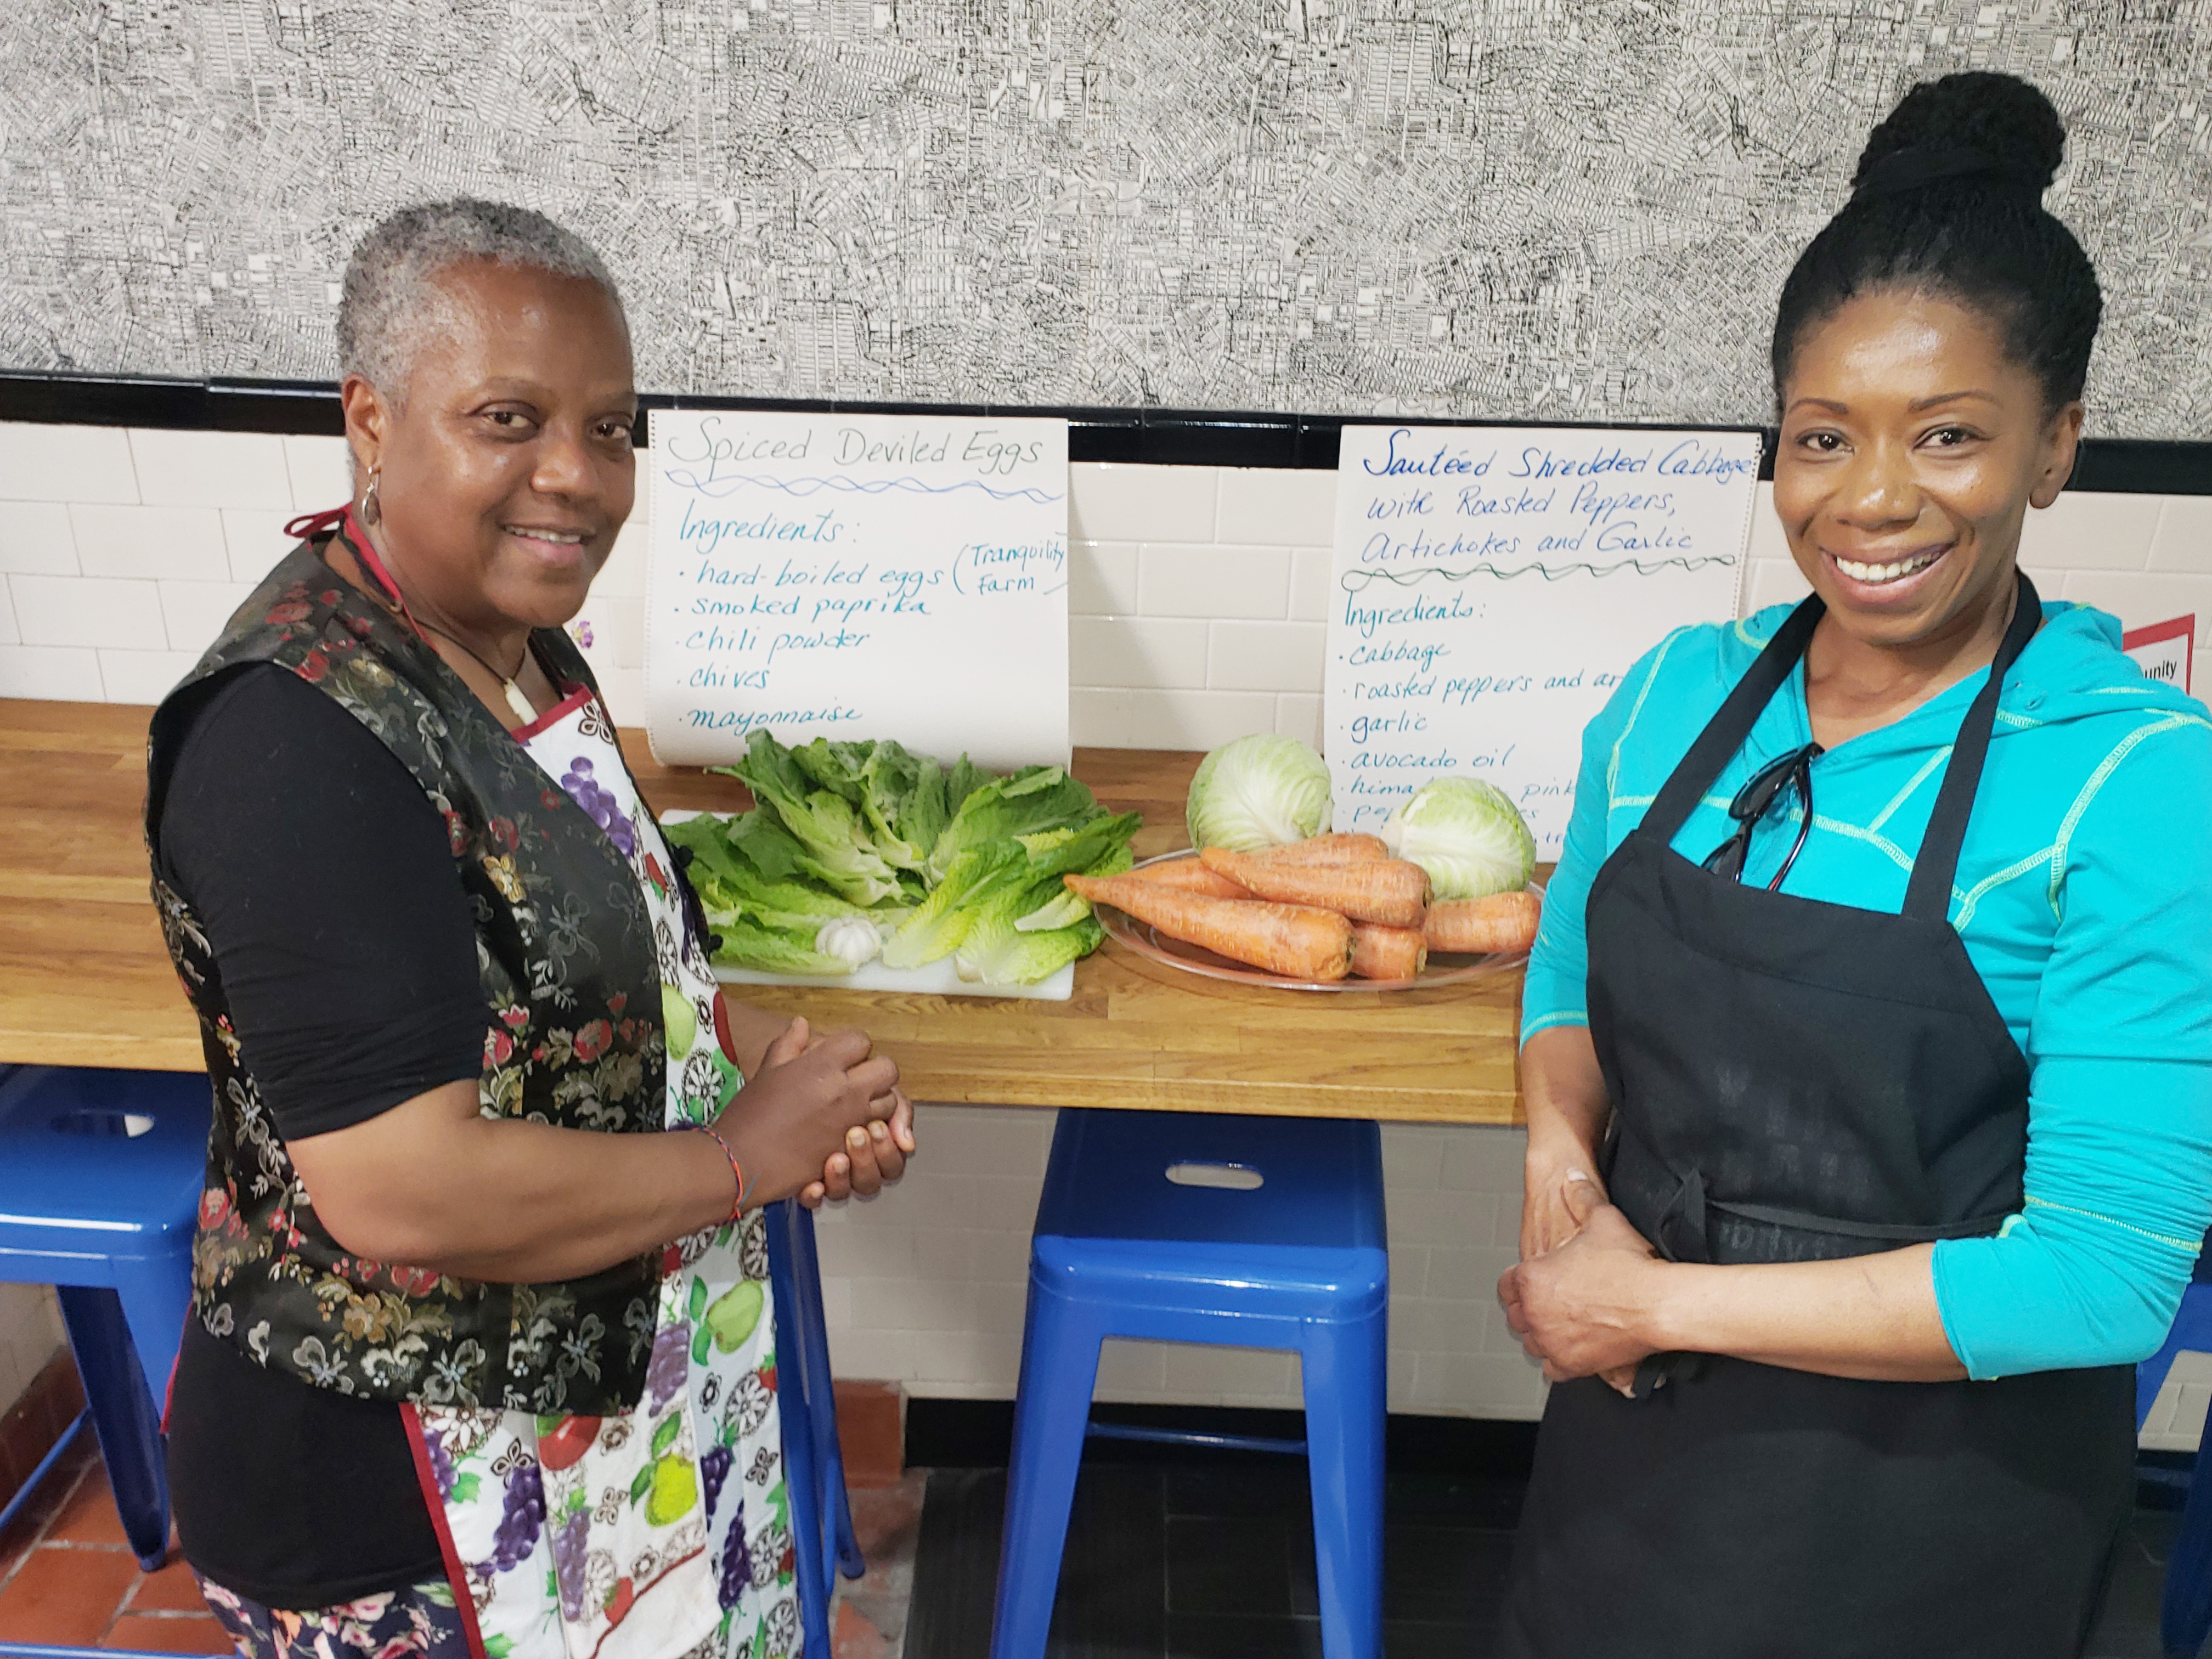 DESTINATION BED-STUY CELEBRATES THE ART OF HEALTHY LIVING